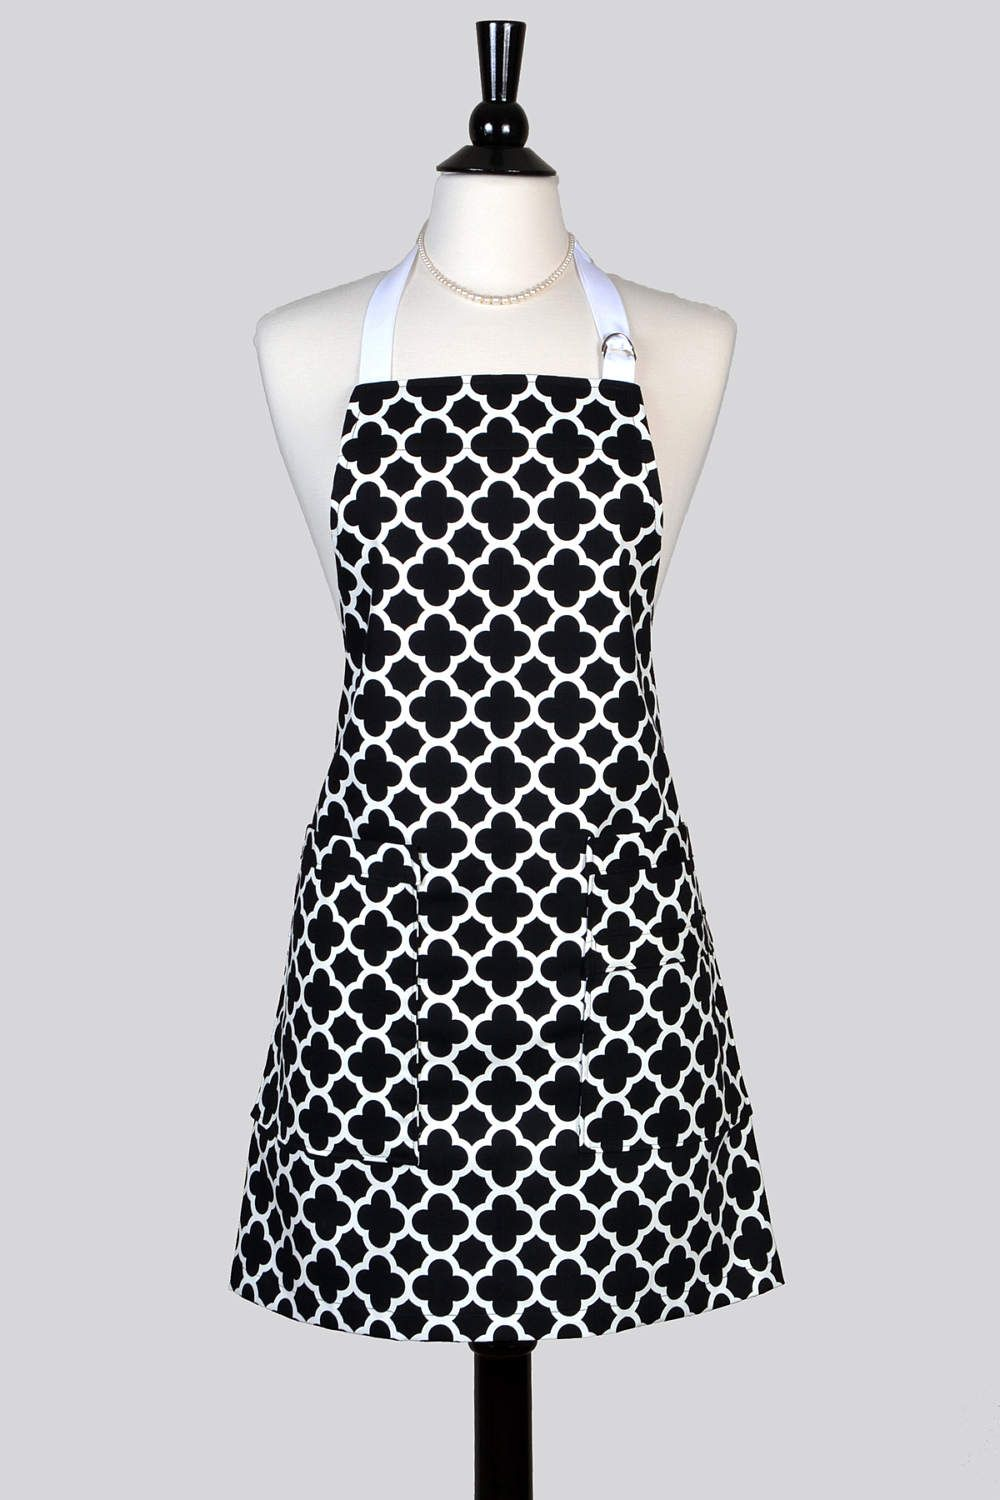 Genial Womens Kitchen Apron Black And White Geometric Retro Vintage Chef Canvas  Apron With Two Large Pockets And Adjustable Neck Ties (DP)